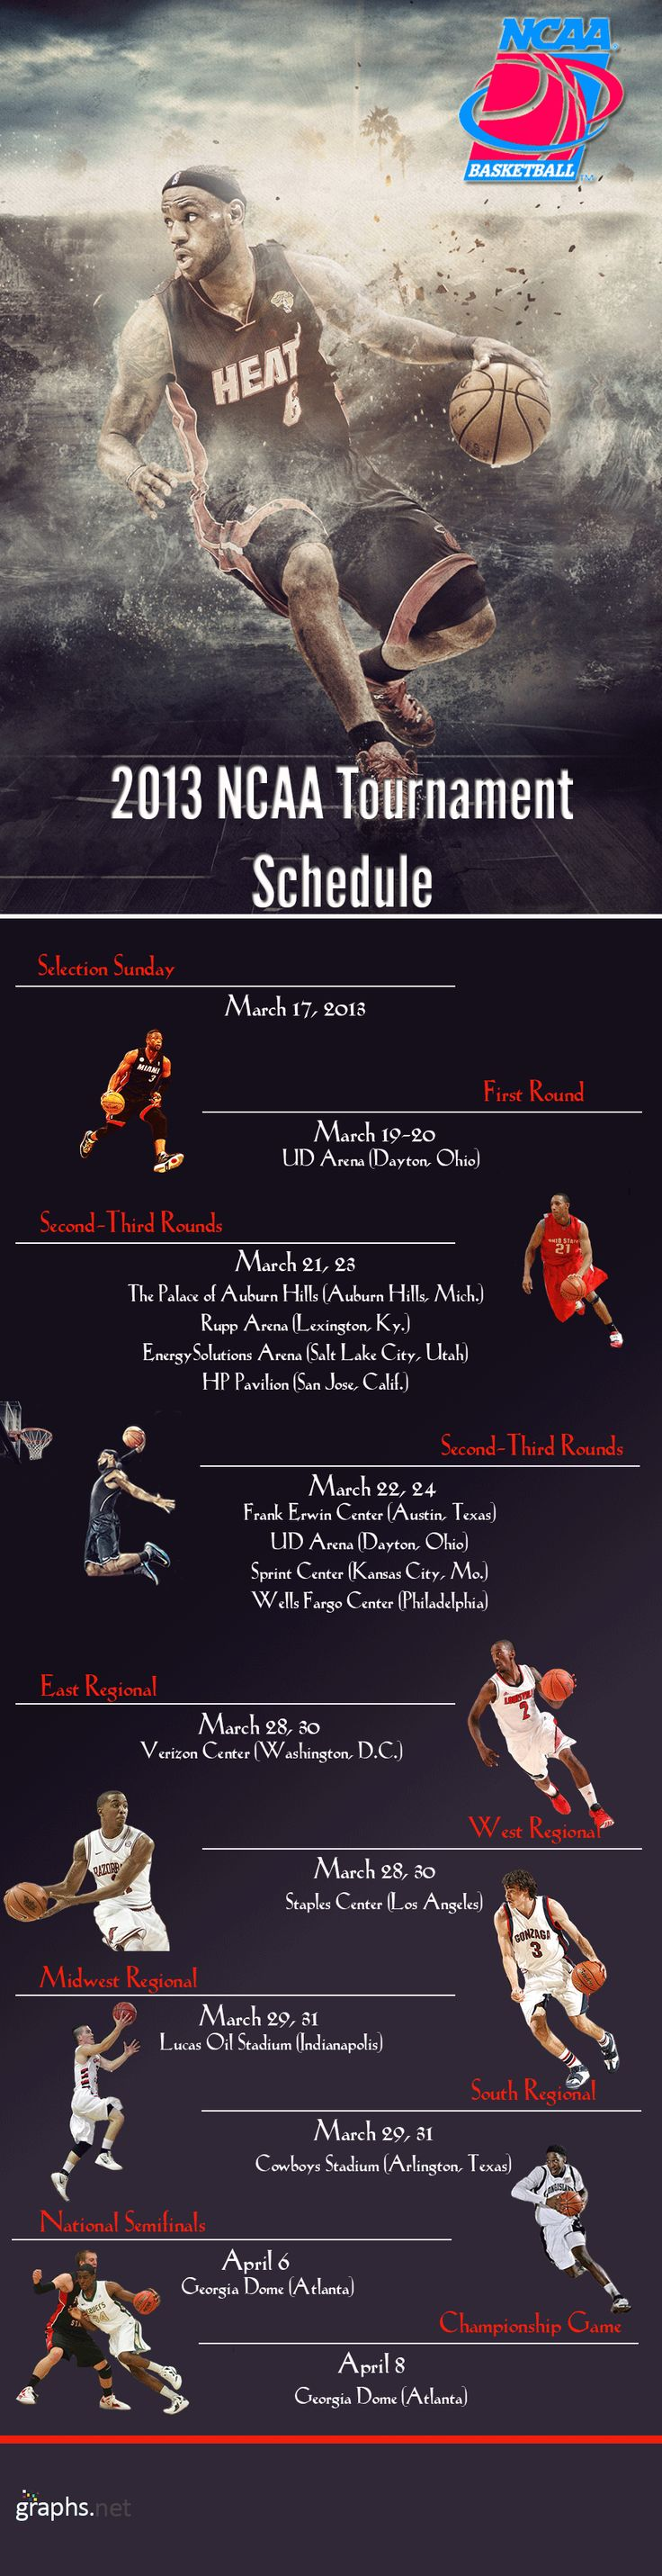 NCAA Basketball Tournament 2013 Schedule #NCAA #Basketball #Tournament #2013 #Schedule #sports #infographics